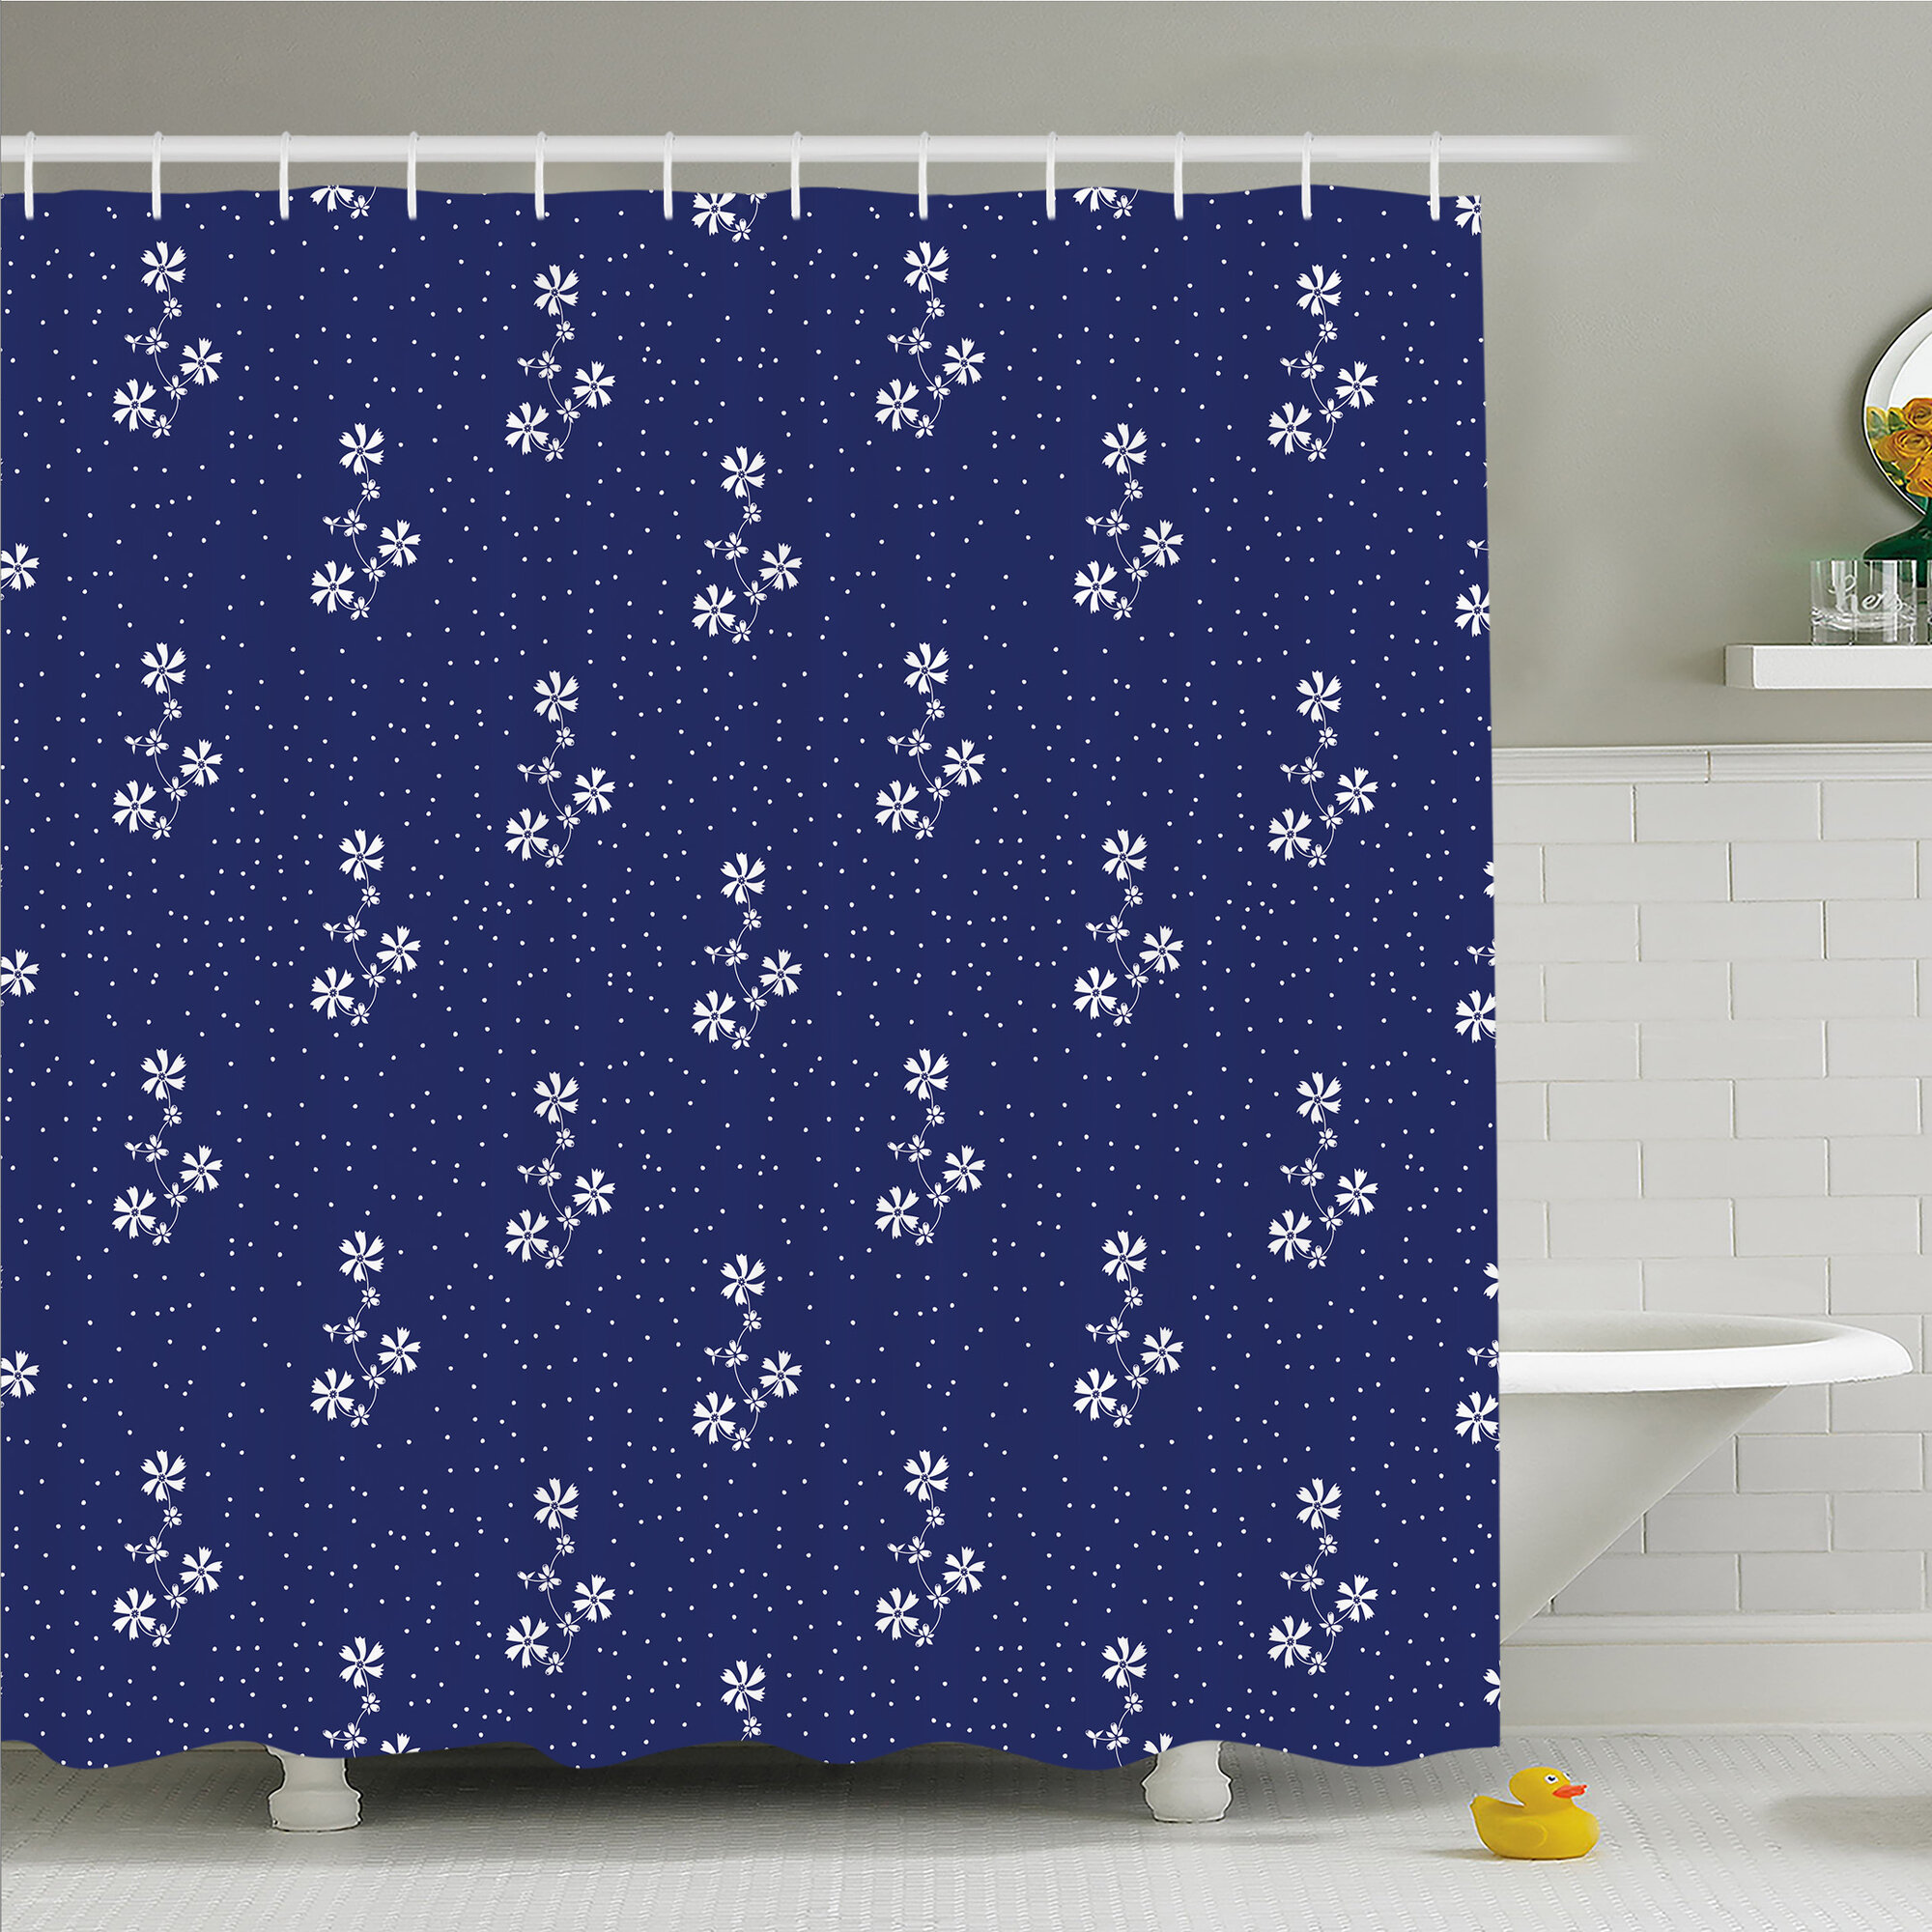 Details About Floral Design Cute Little Dots And Flowers Country Home Art Shower Curtain Set